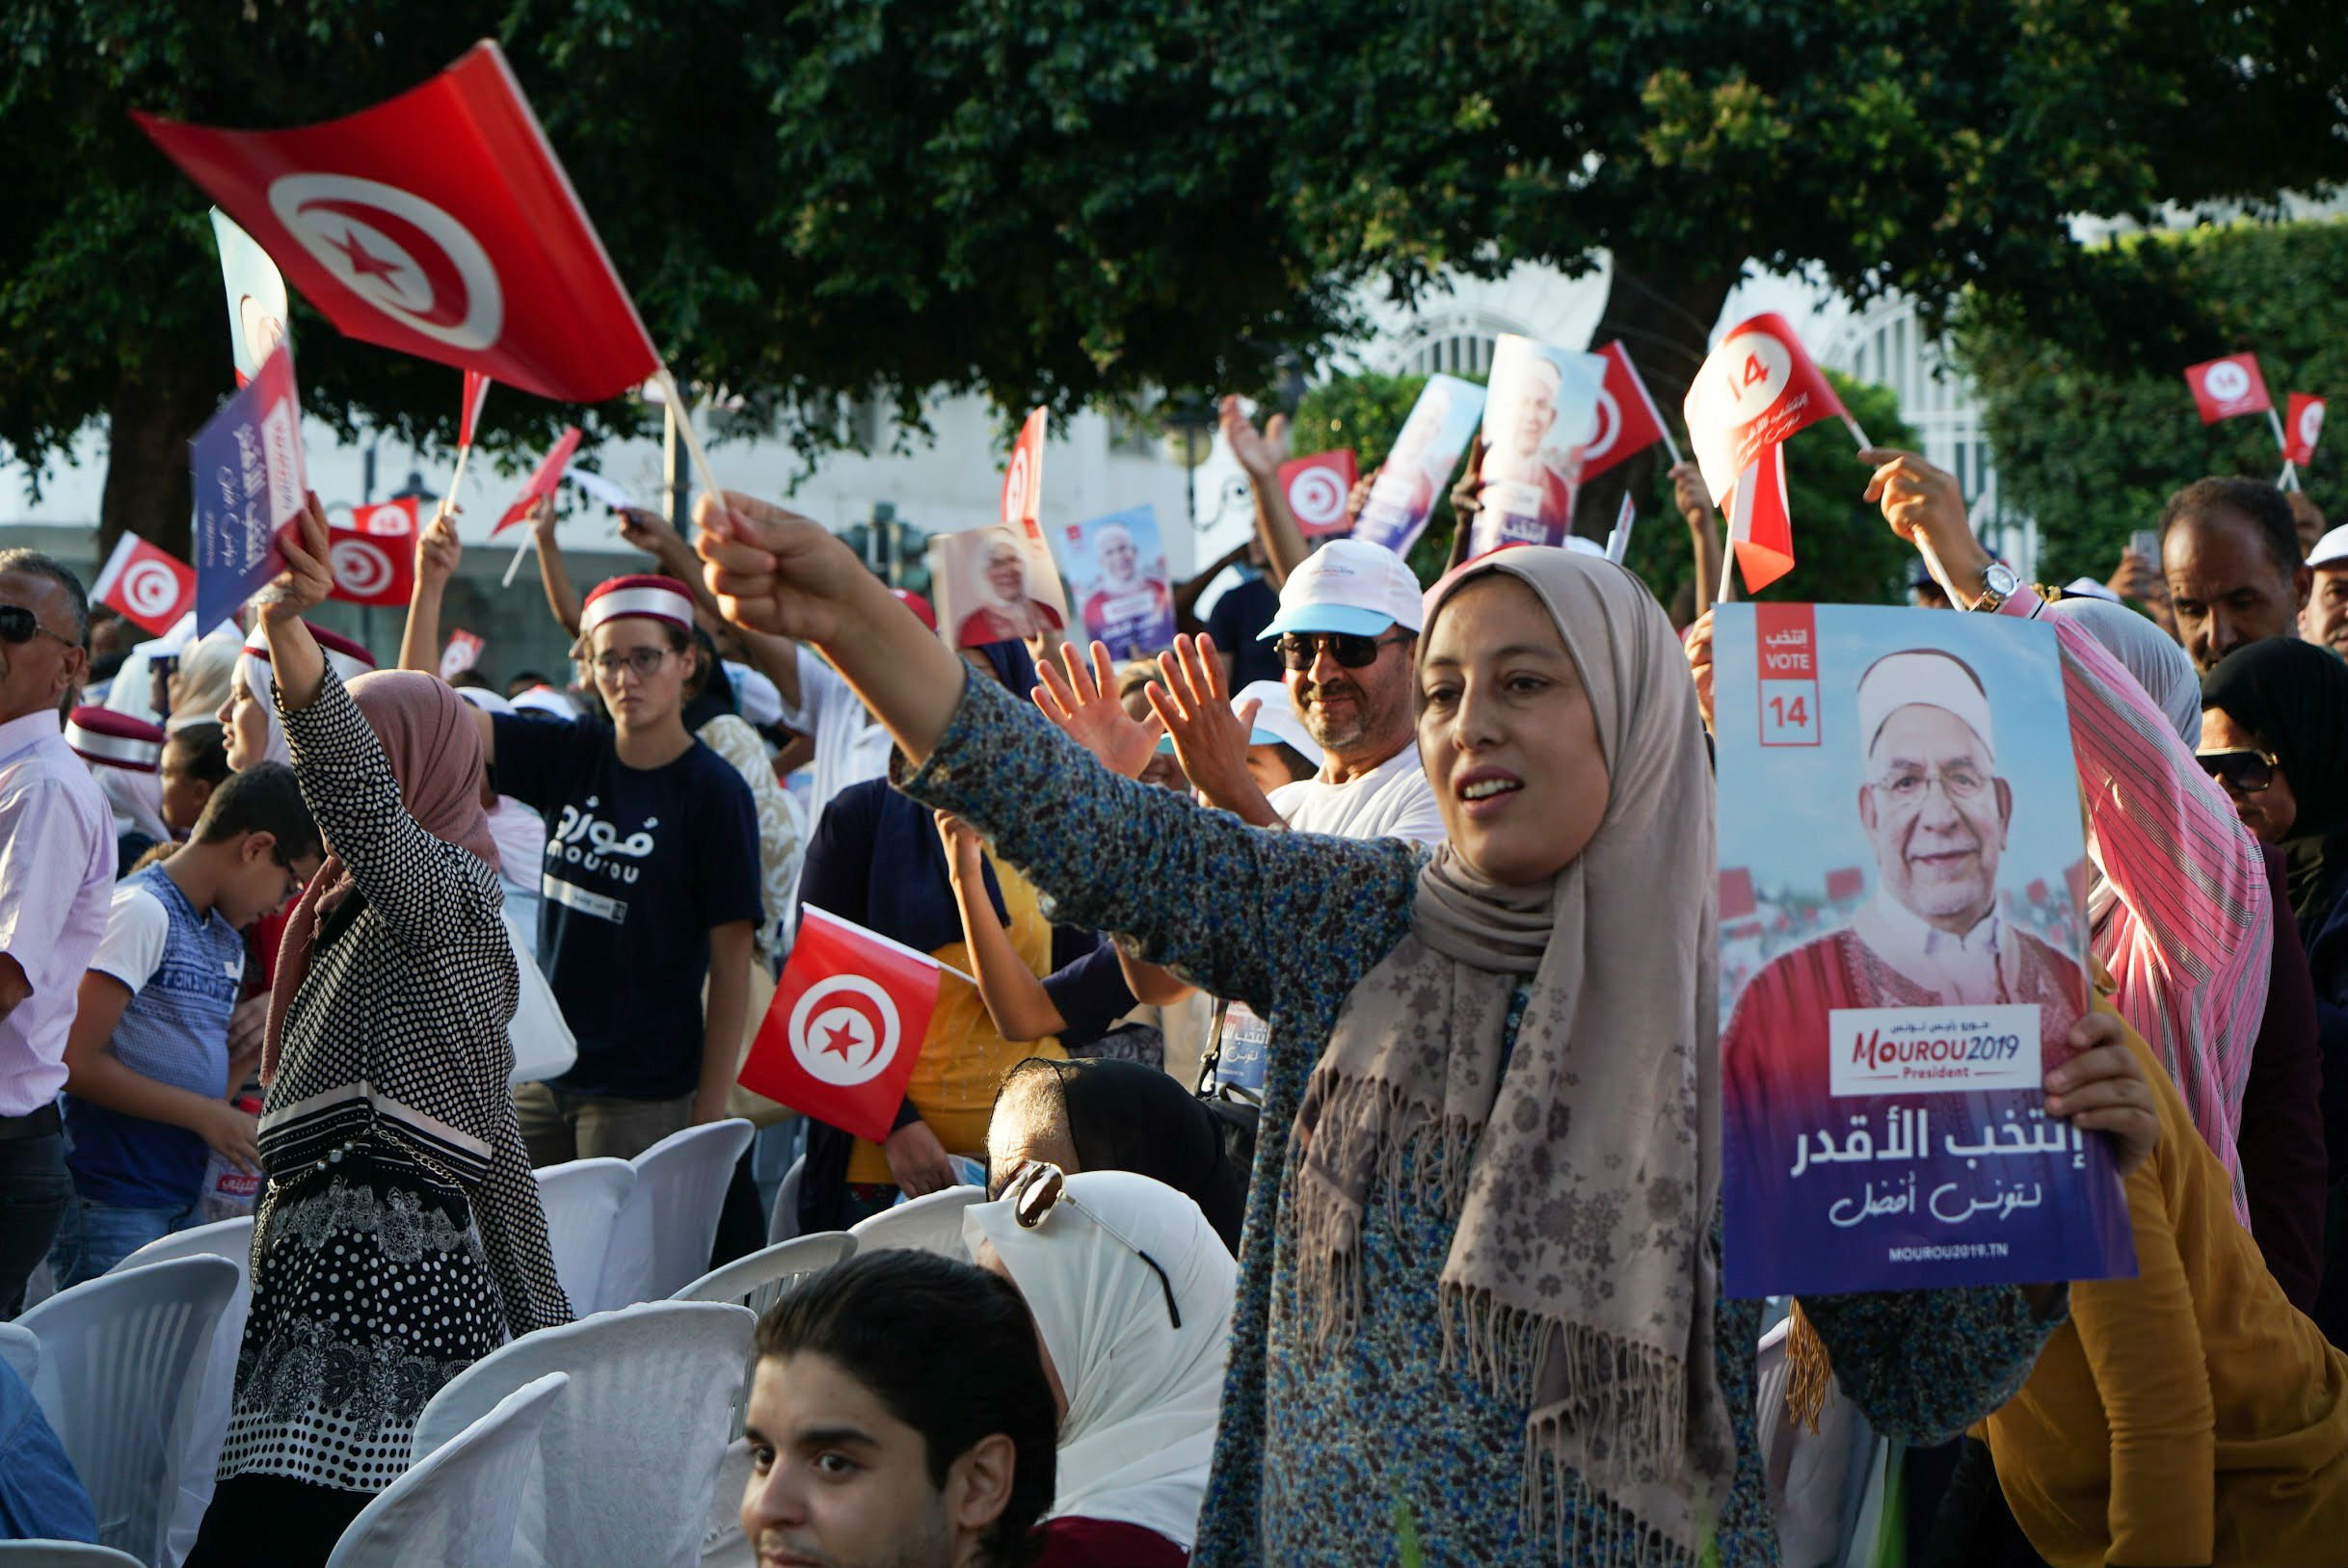 Supporters of Abdelfattah Mourou, Ennahdha's candidate, see at a rally in Tunis (MEE/Faisal Edroos)